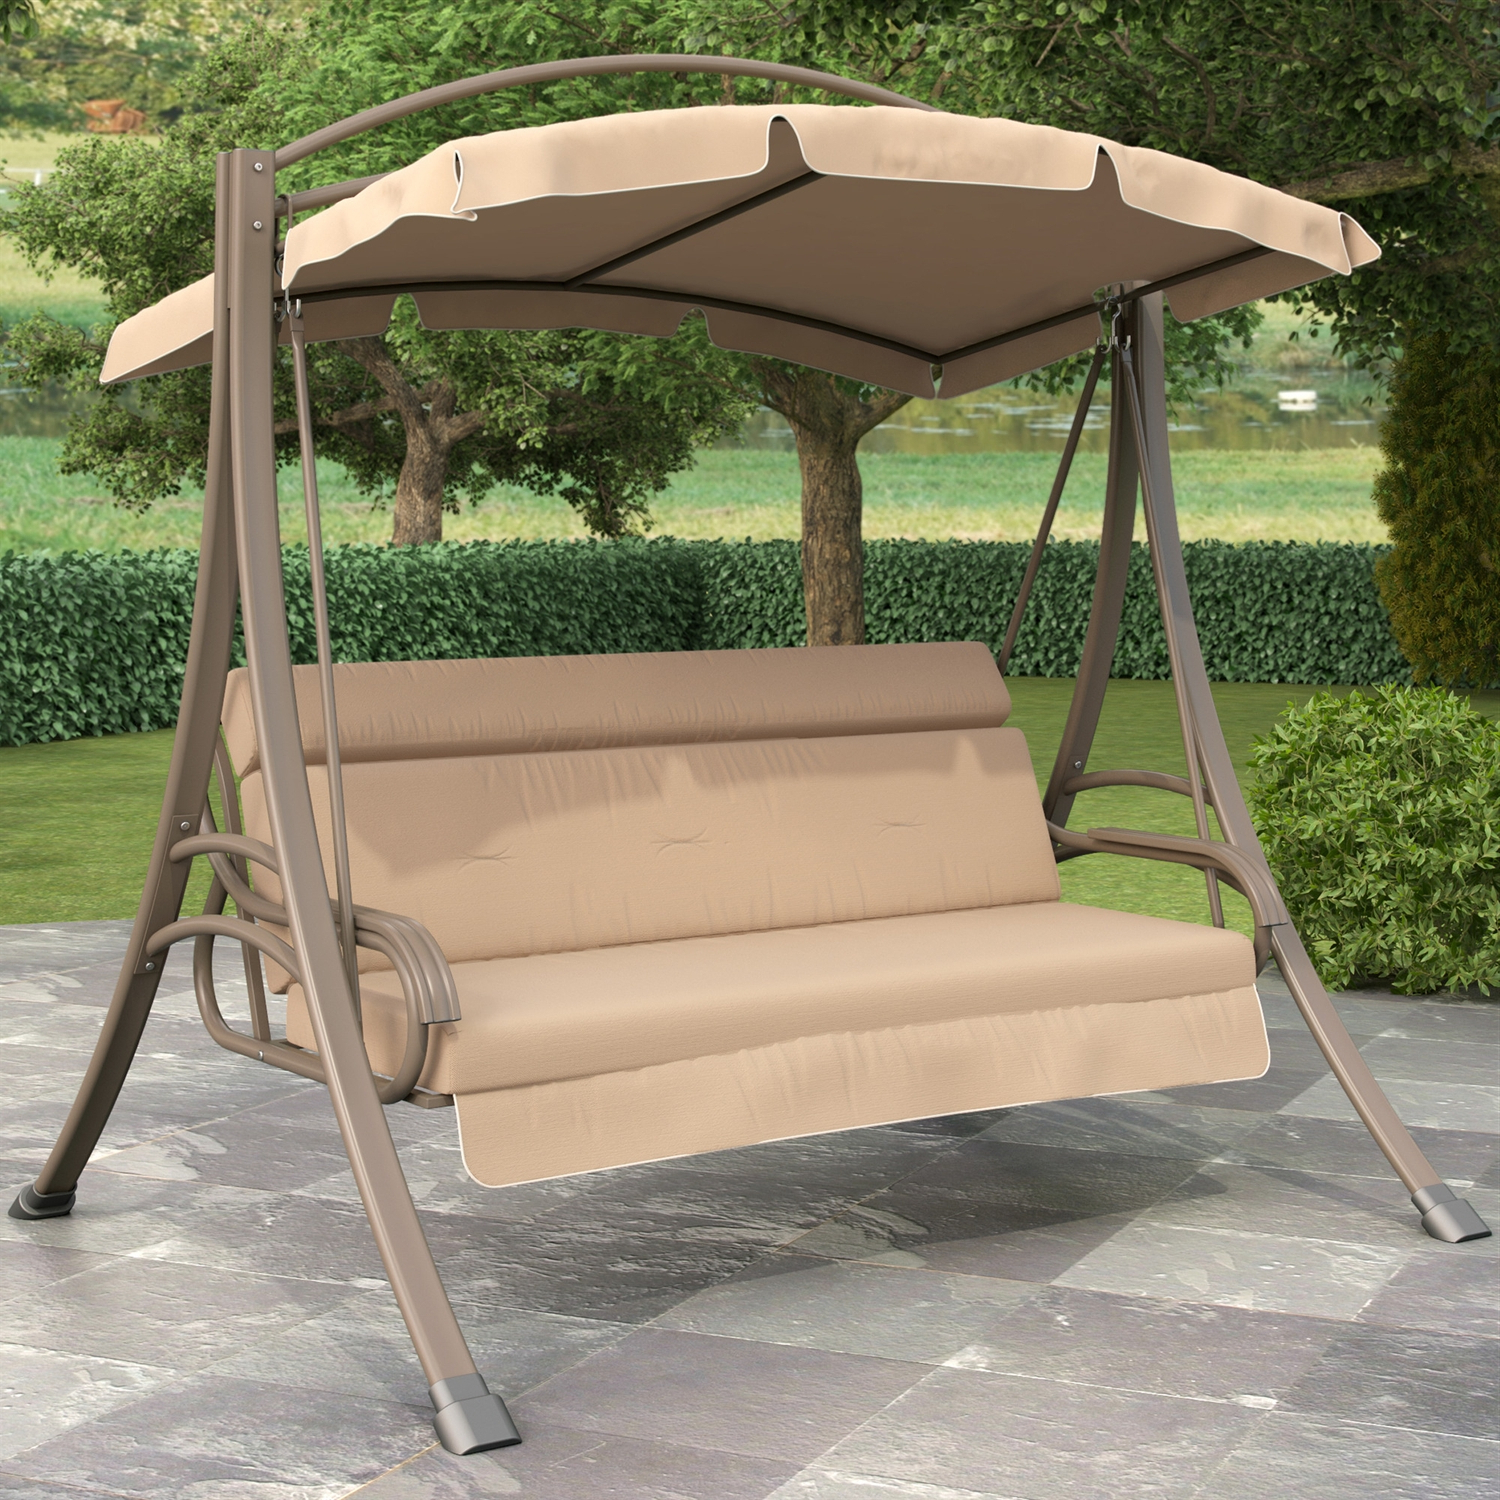 Outdoor Swing Chairs For Relaxing Within Outdoor Porch Swings (View 11 of 25)